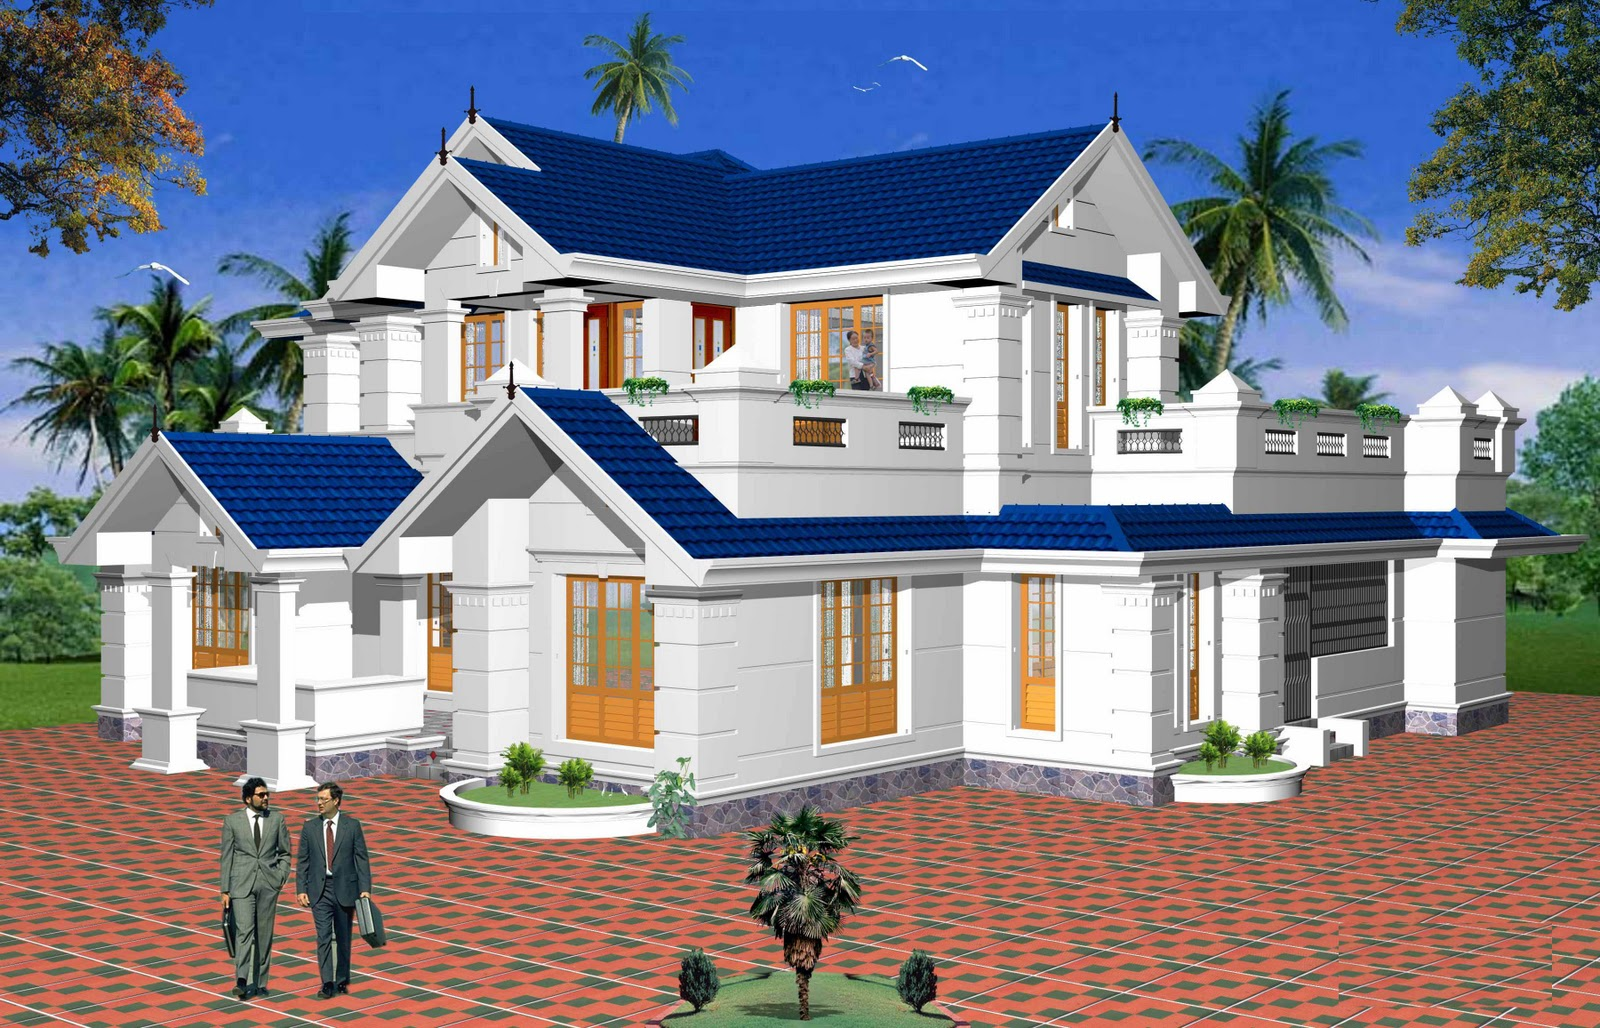 New home designs latest beautiful latest modern home for Stylish home design ideas